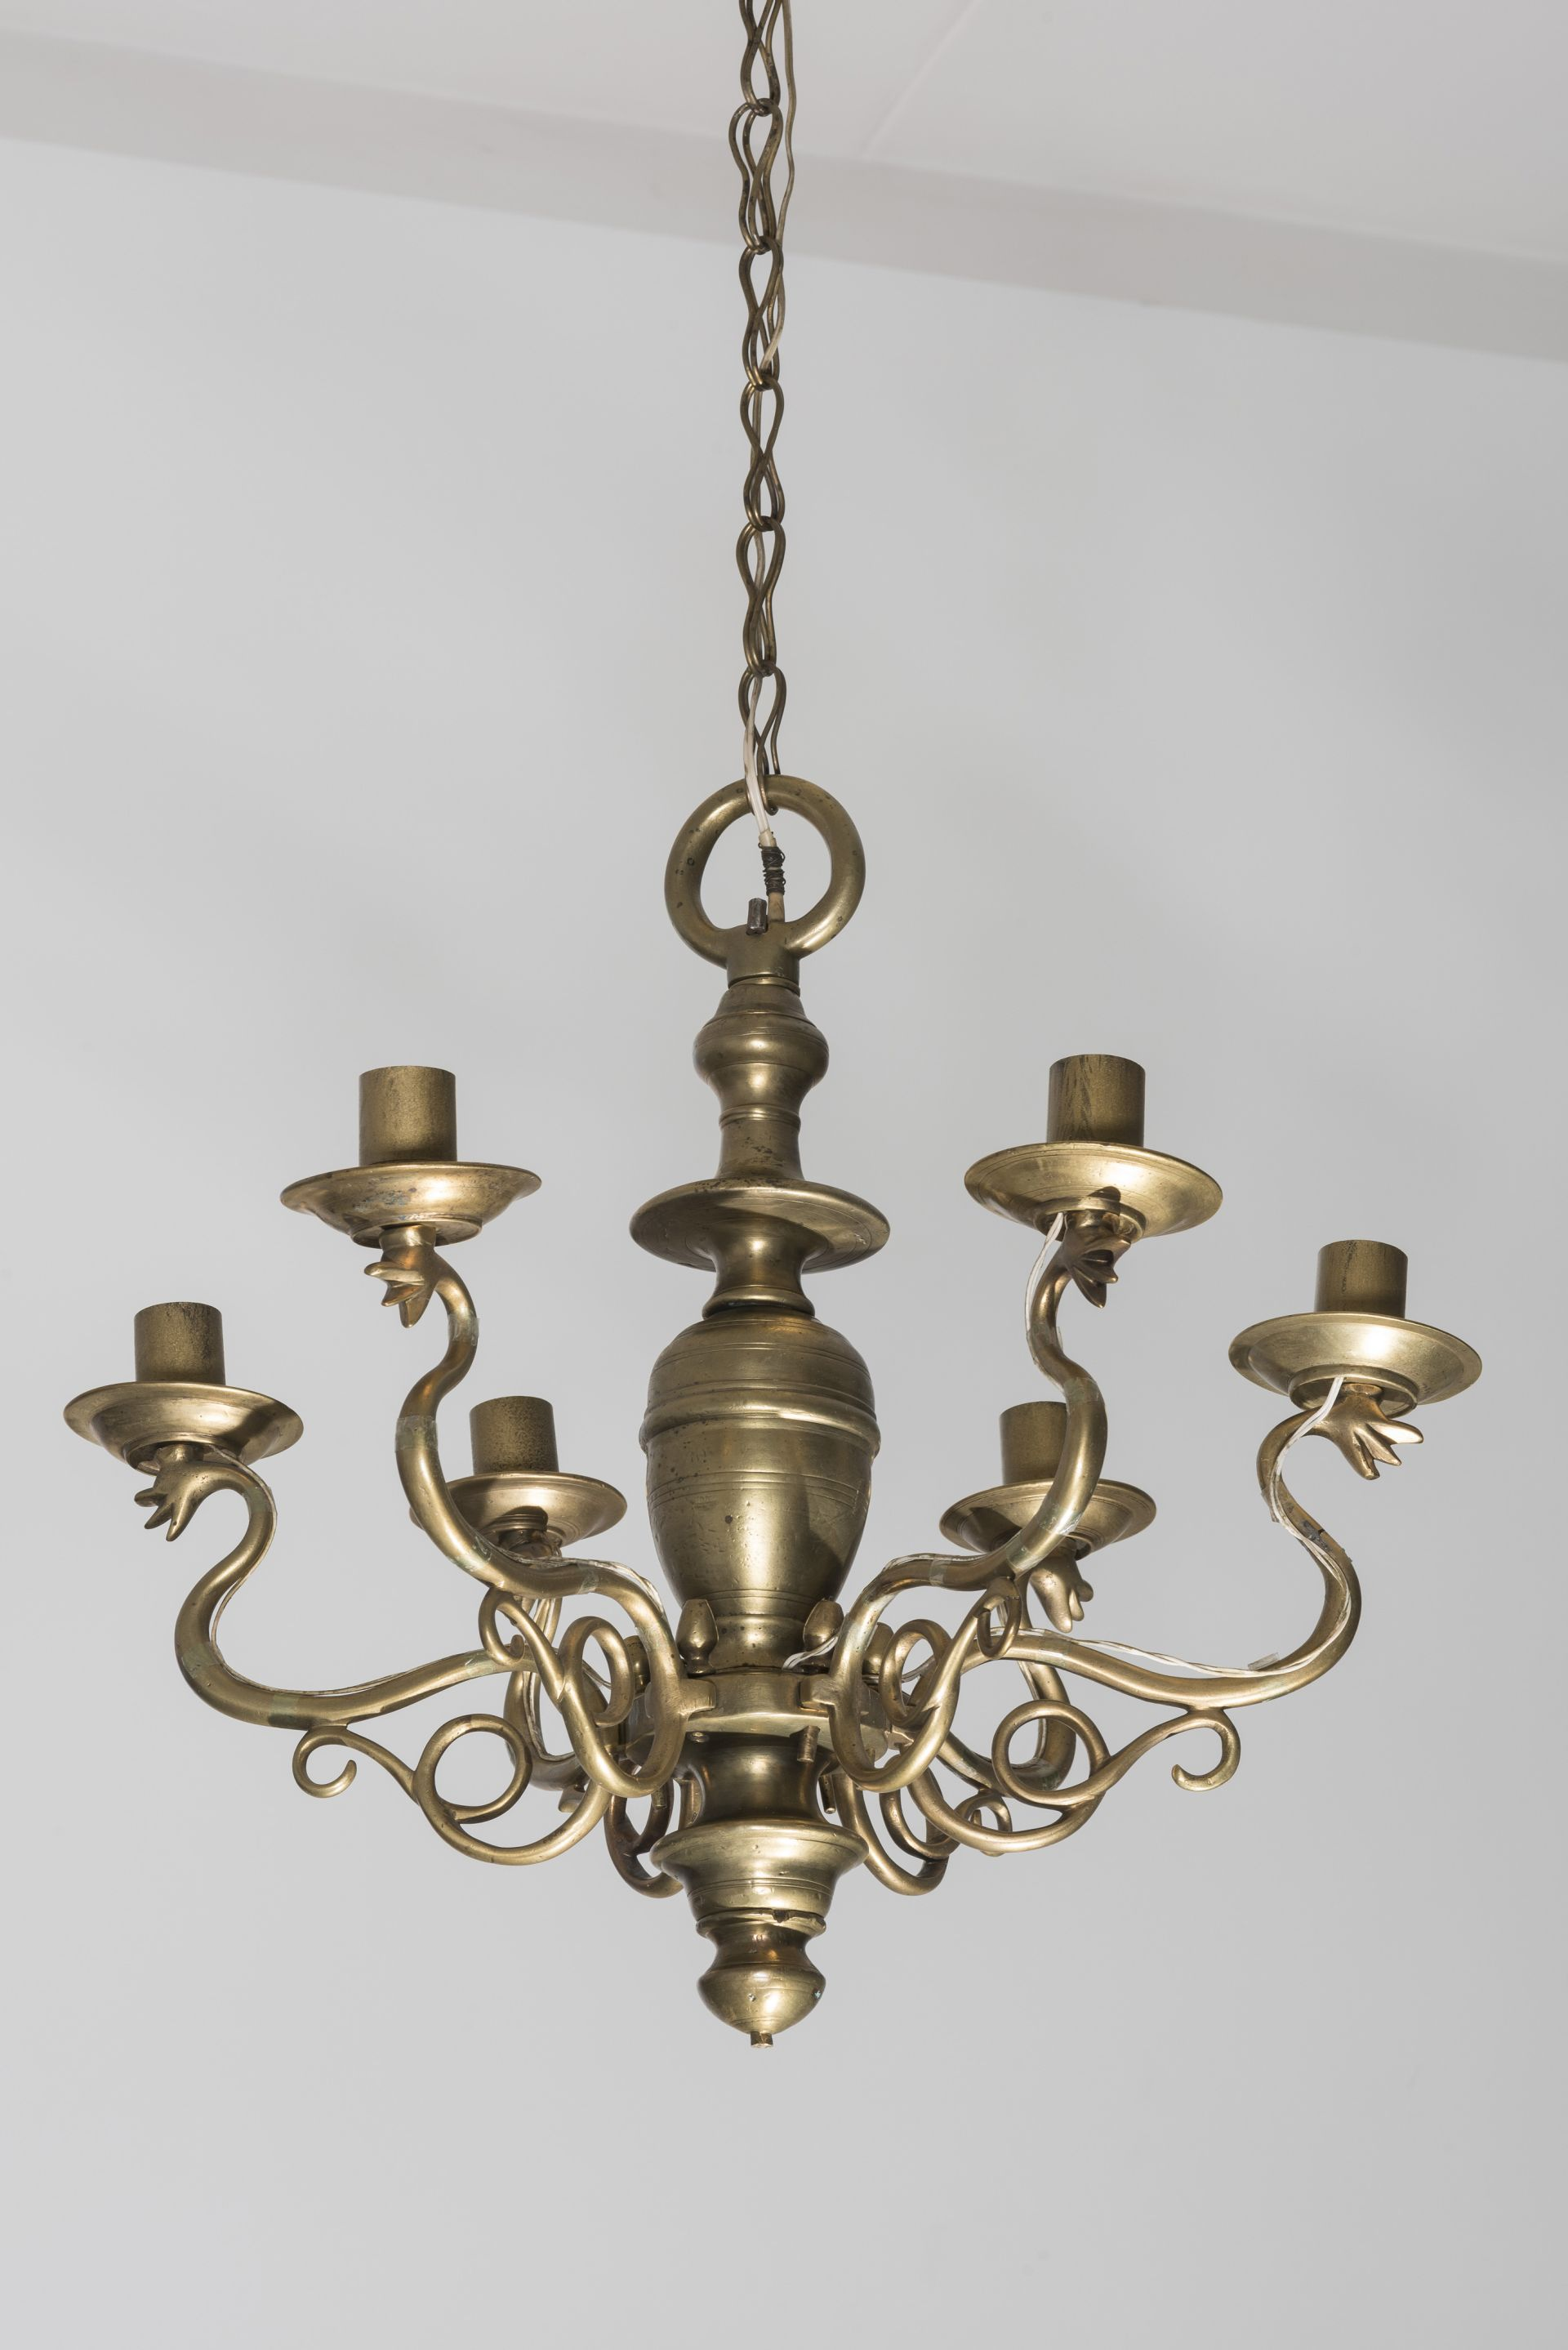 Chandelier, 1587–1649, National Museum of Lithuania, IM-4618. Photo by Kęstutis Stoškus, 2018